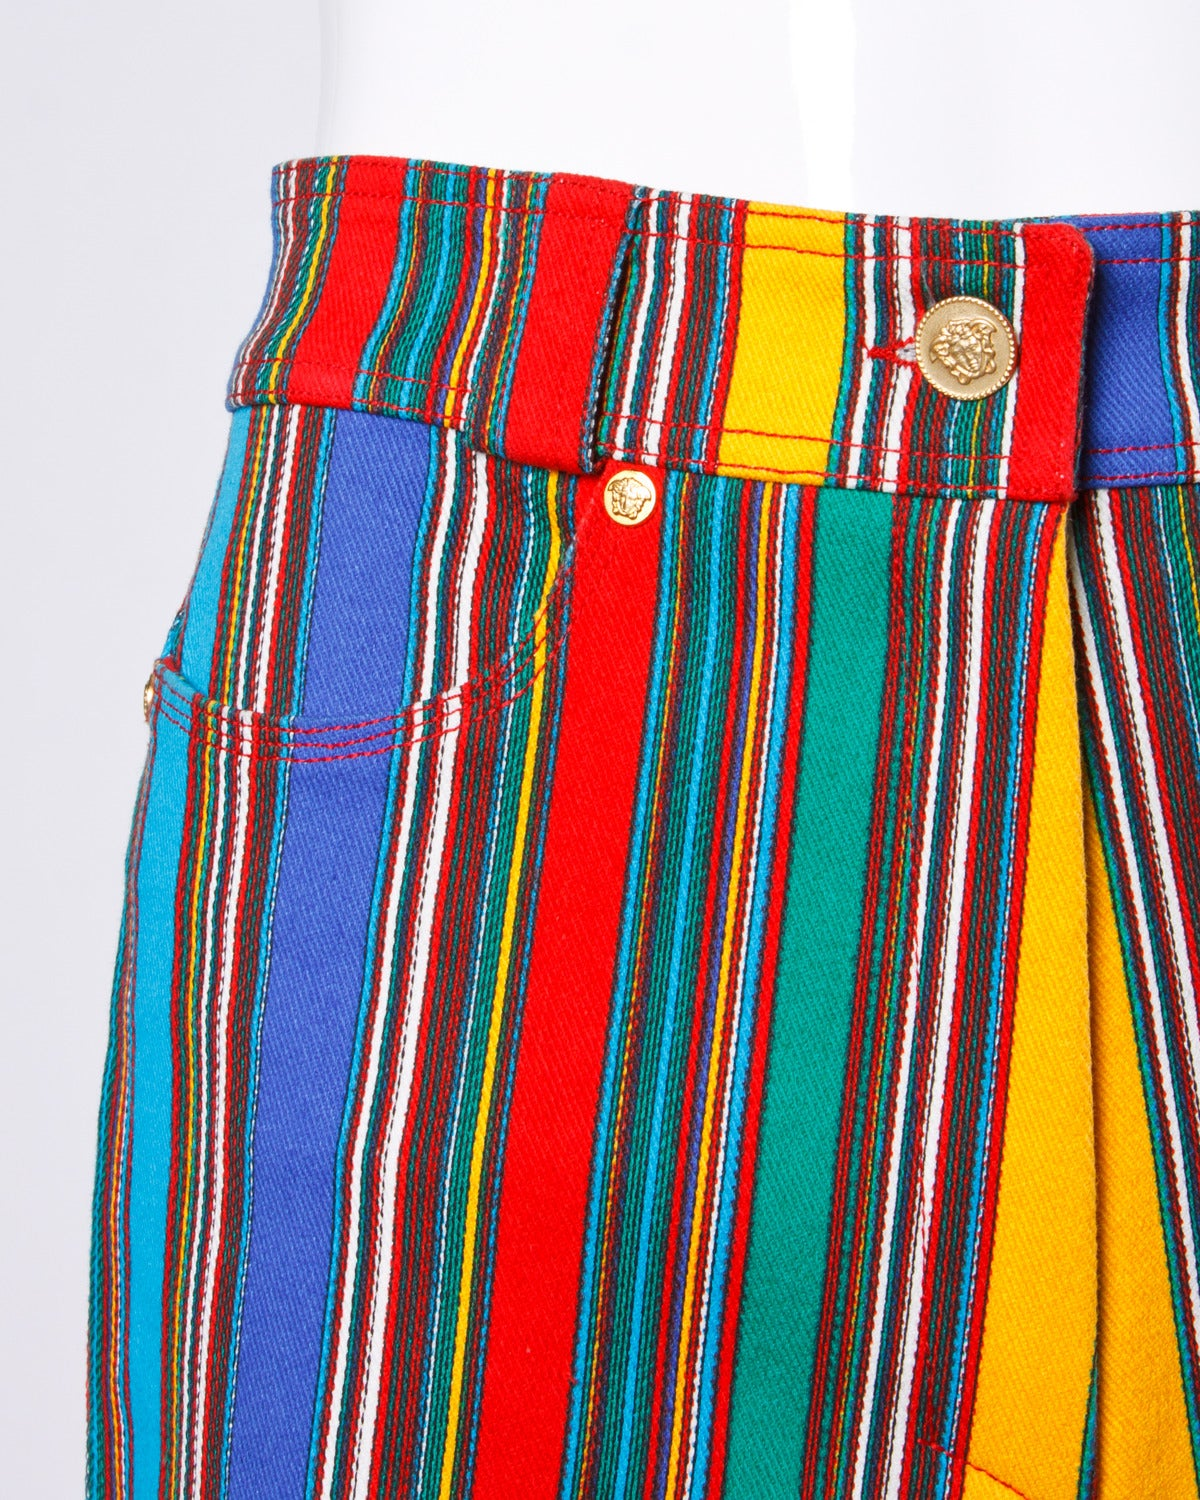 1993 Unworn Gianni Versace Couture Vintage Shorts as Worn by Naomi Campbell 4